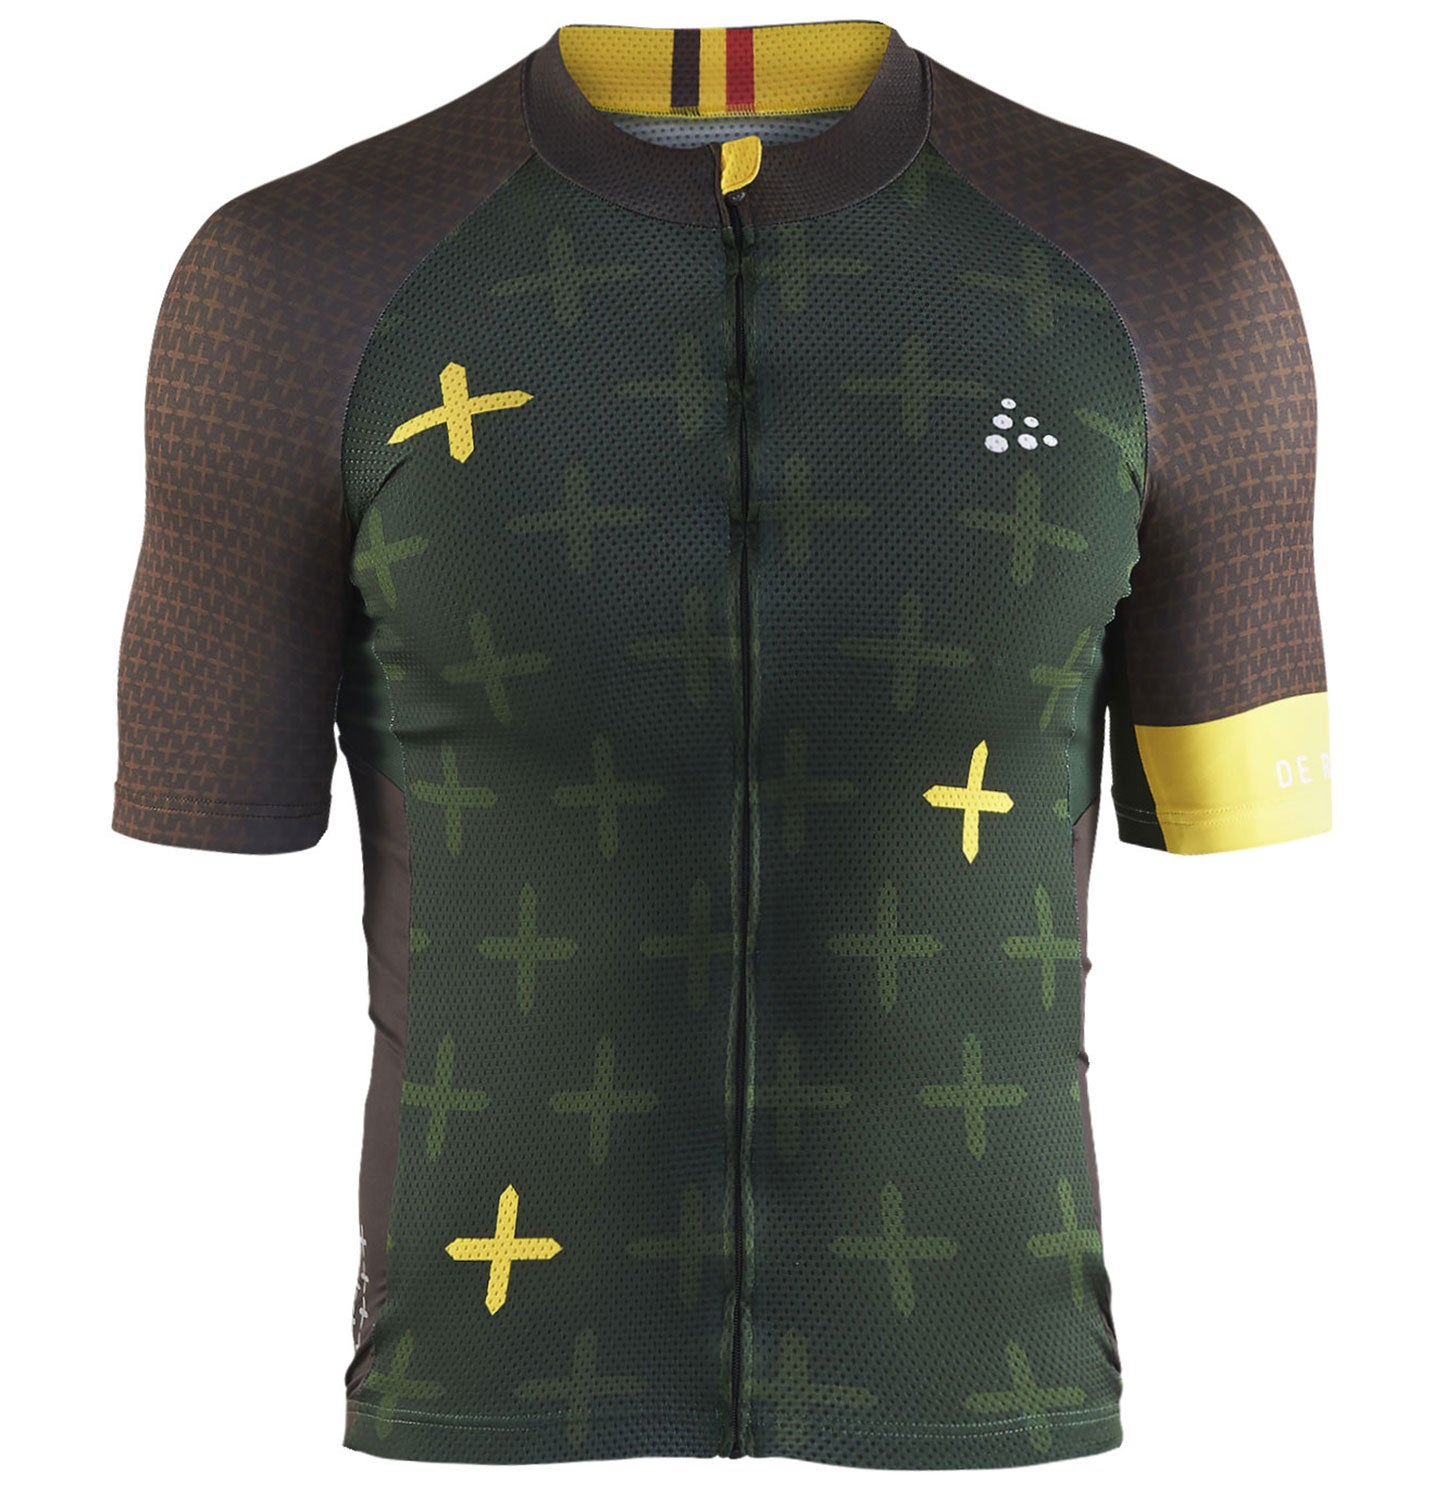 Tour of Flanders Monument Jersey aeea4b019